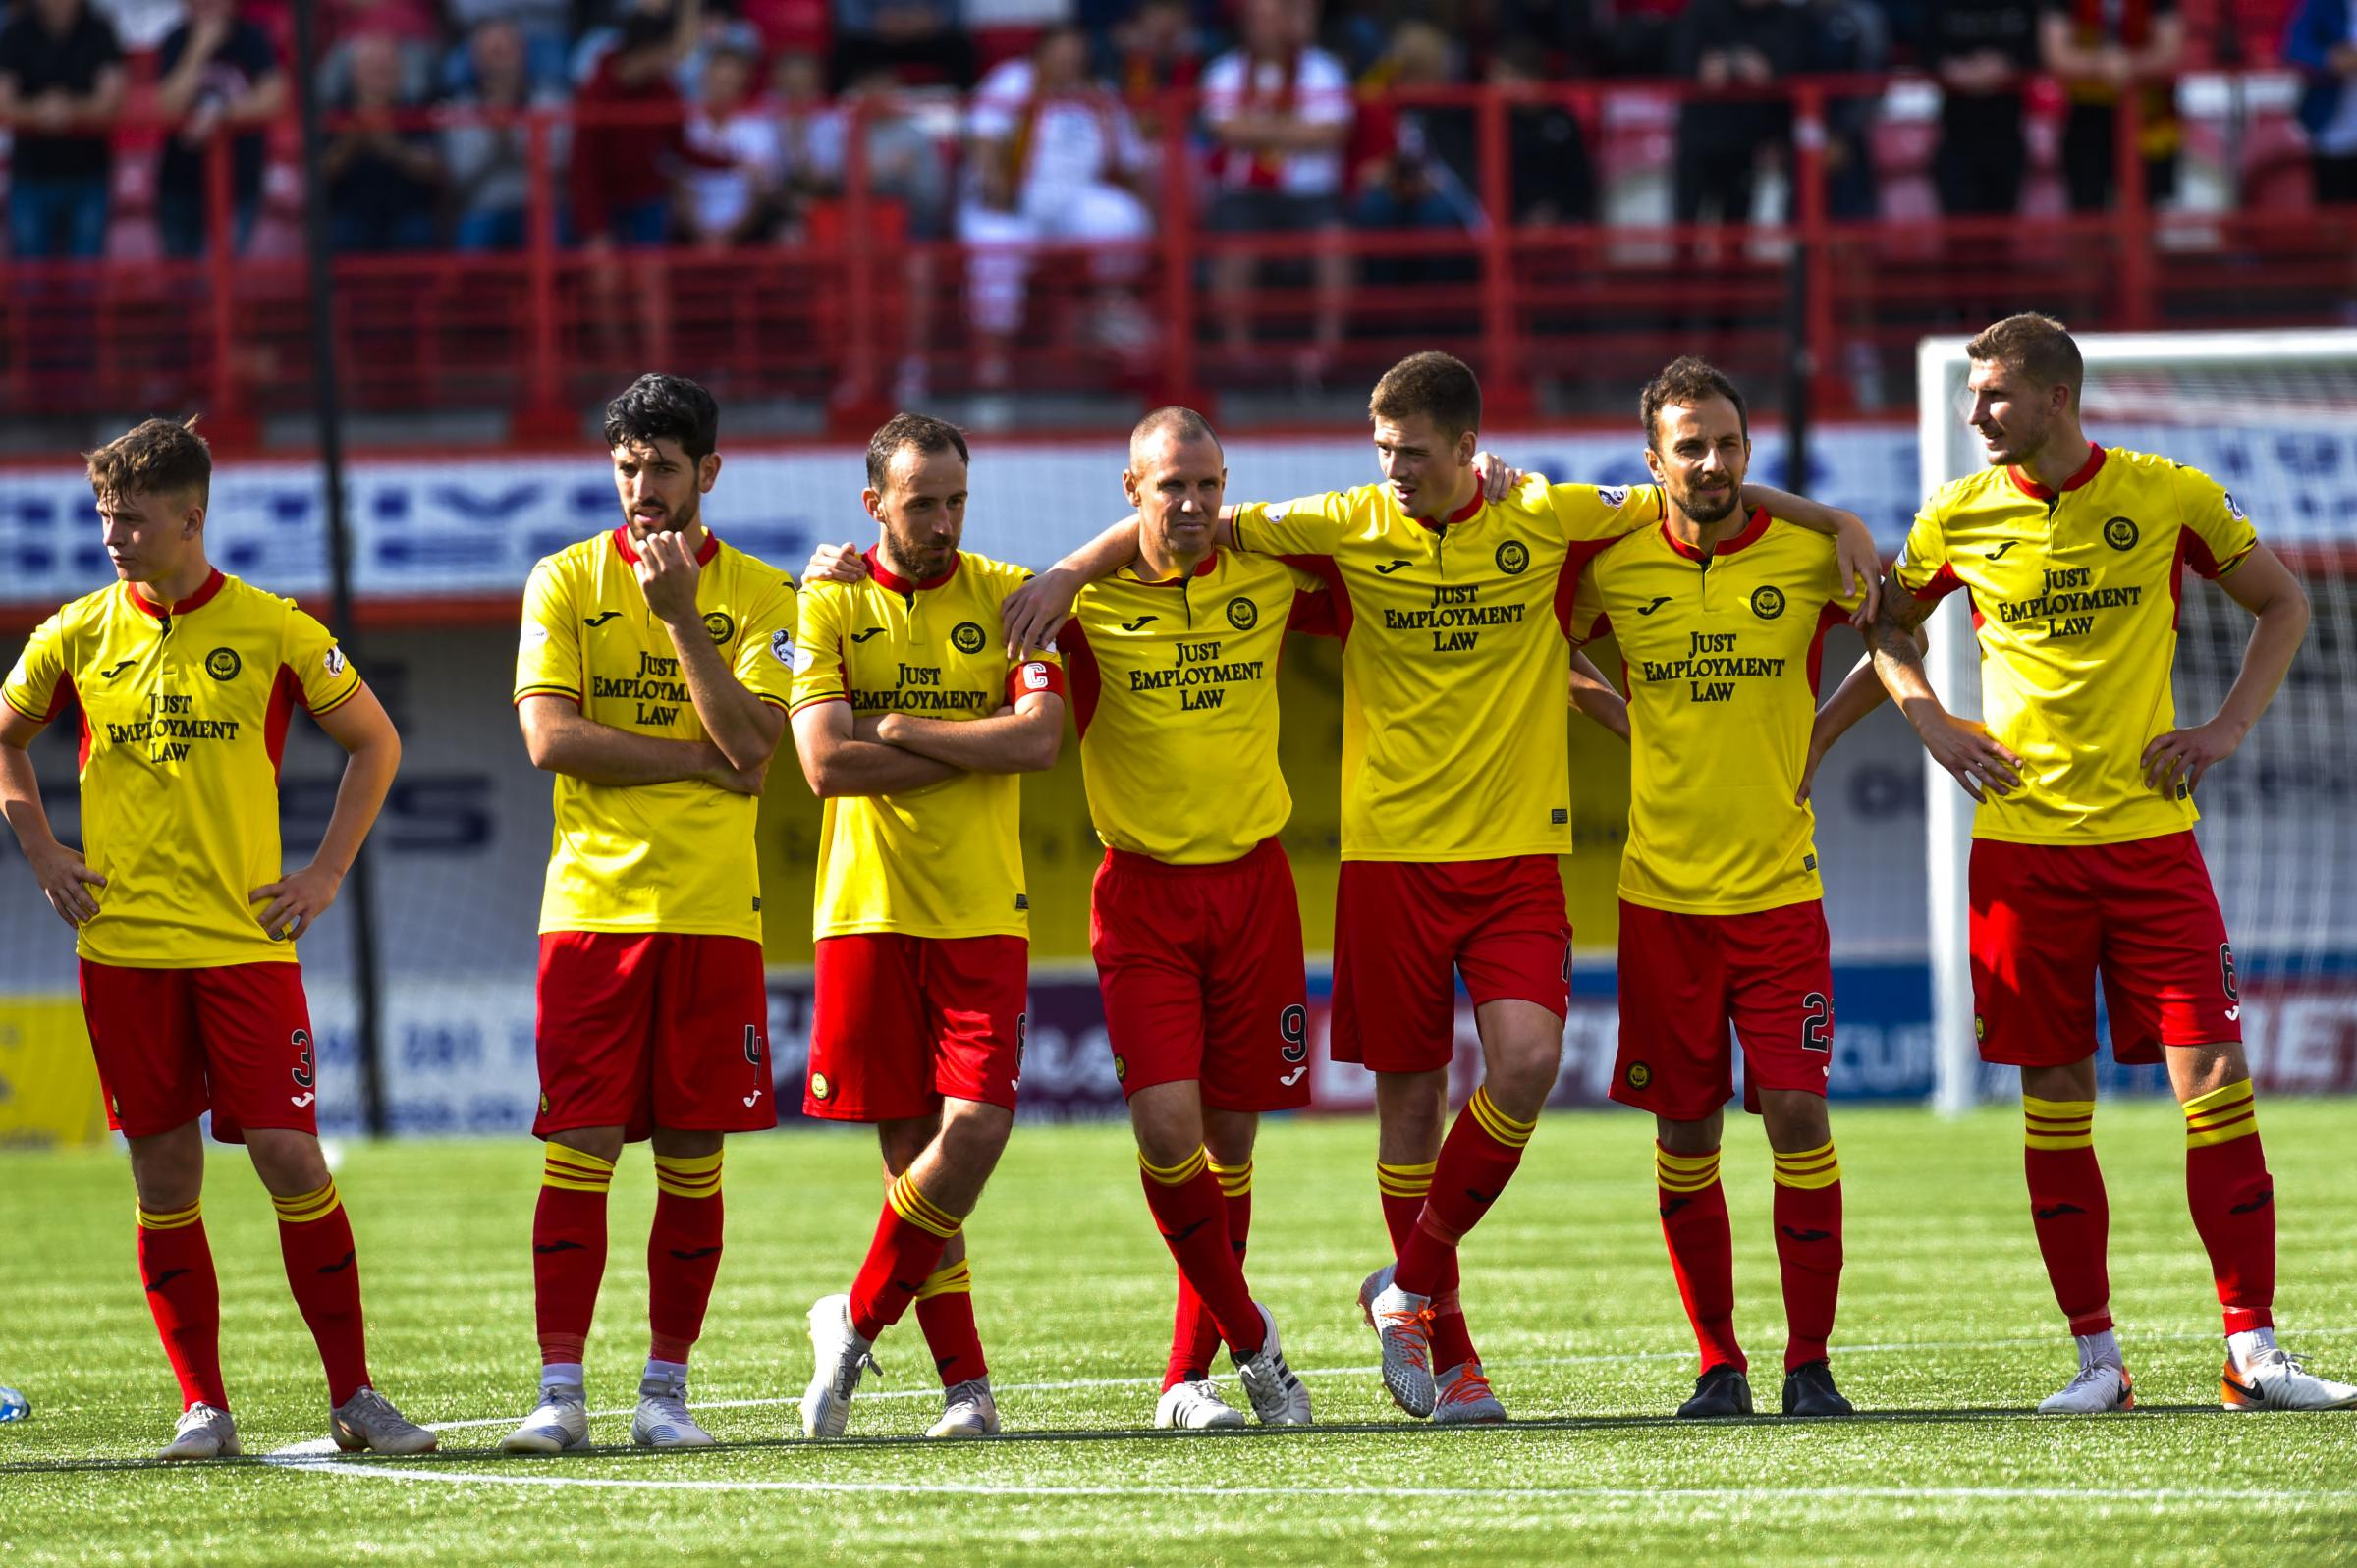 Partick Thistle's uncertain future is looking bleaker by the day